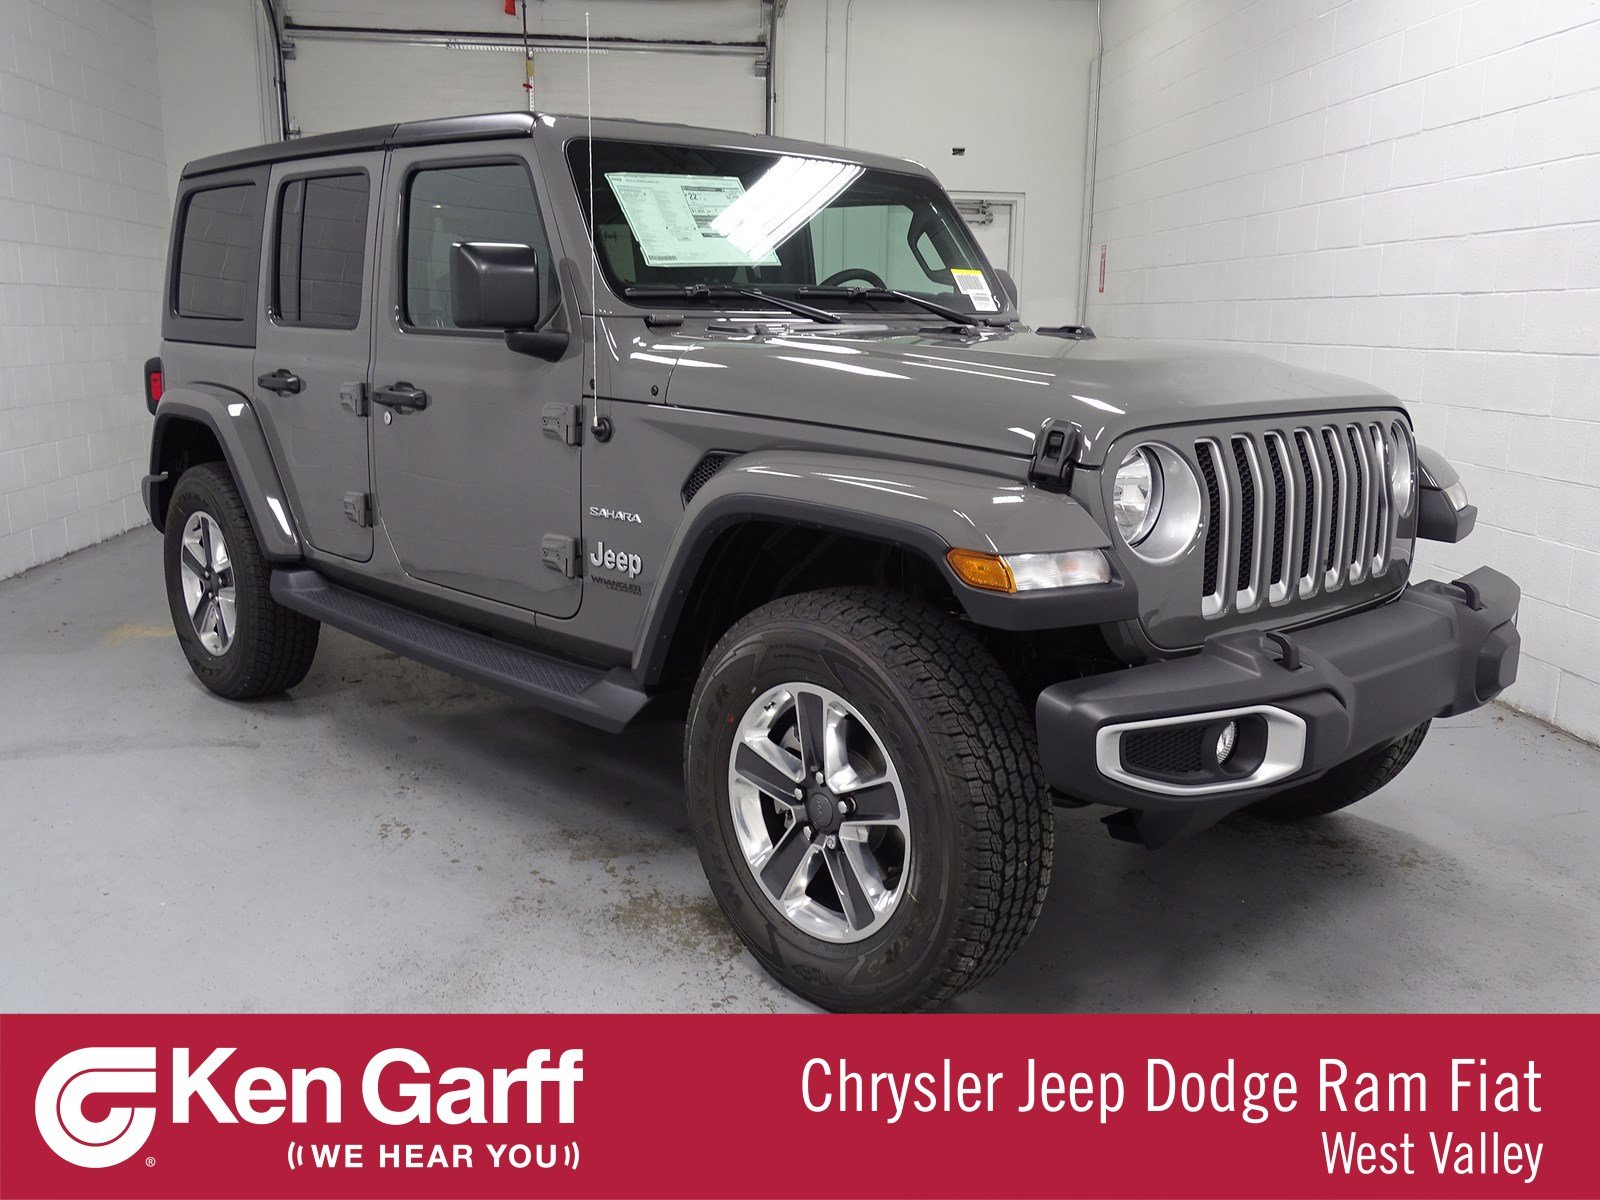 New 2018 Jeep Wrangler Unlimited Sahara Convertible 1j80966 Ken 0 Dodge Dakota Custom Fit Vehicle Wiring Tow Ready